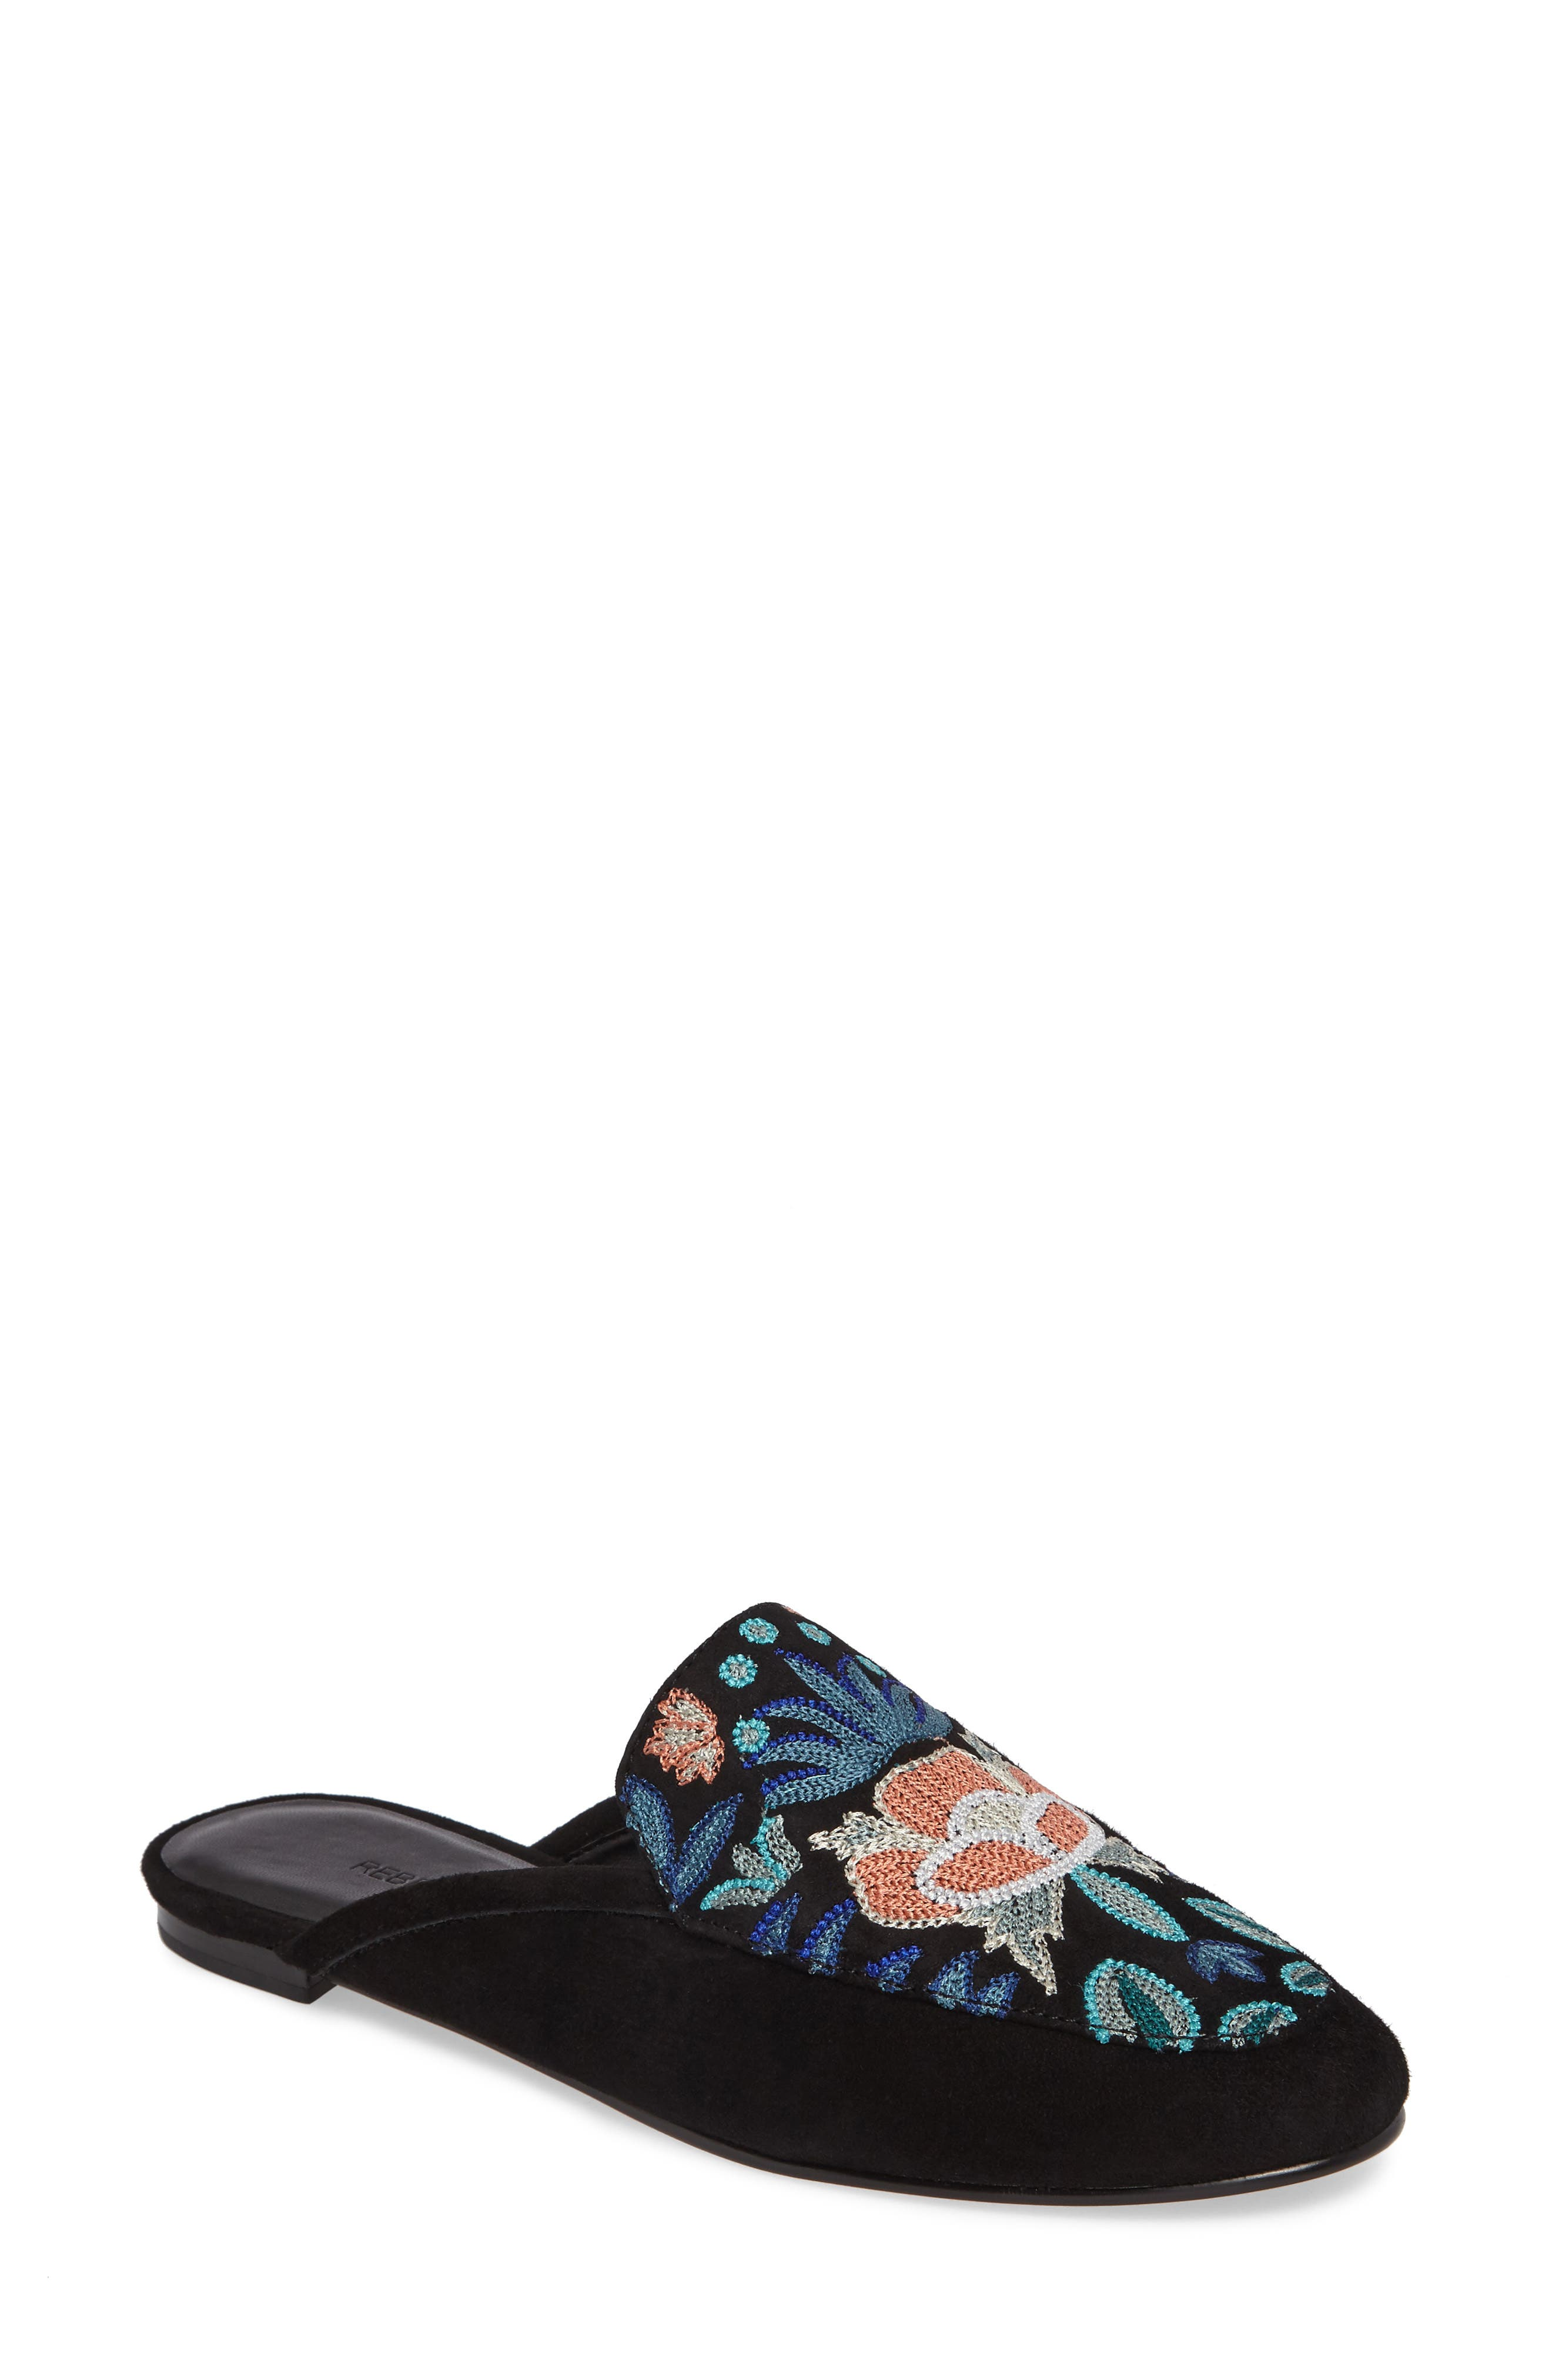 Rebecca Minkoff Raylee Floral Loafer Mule (Women)